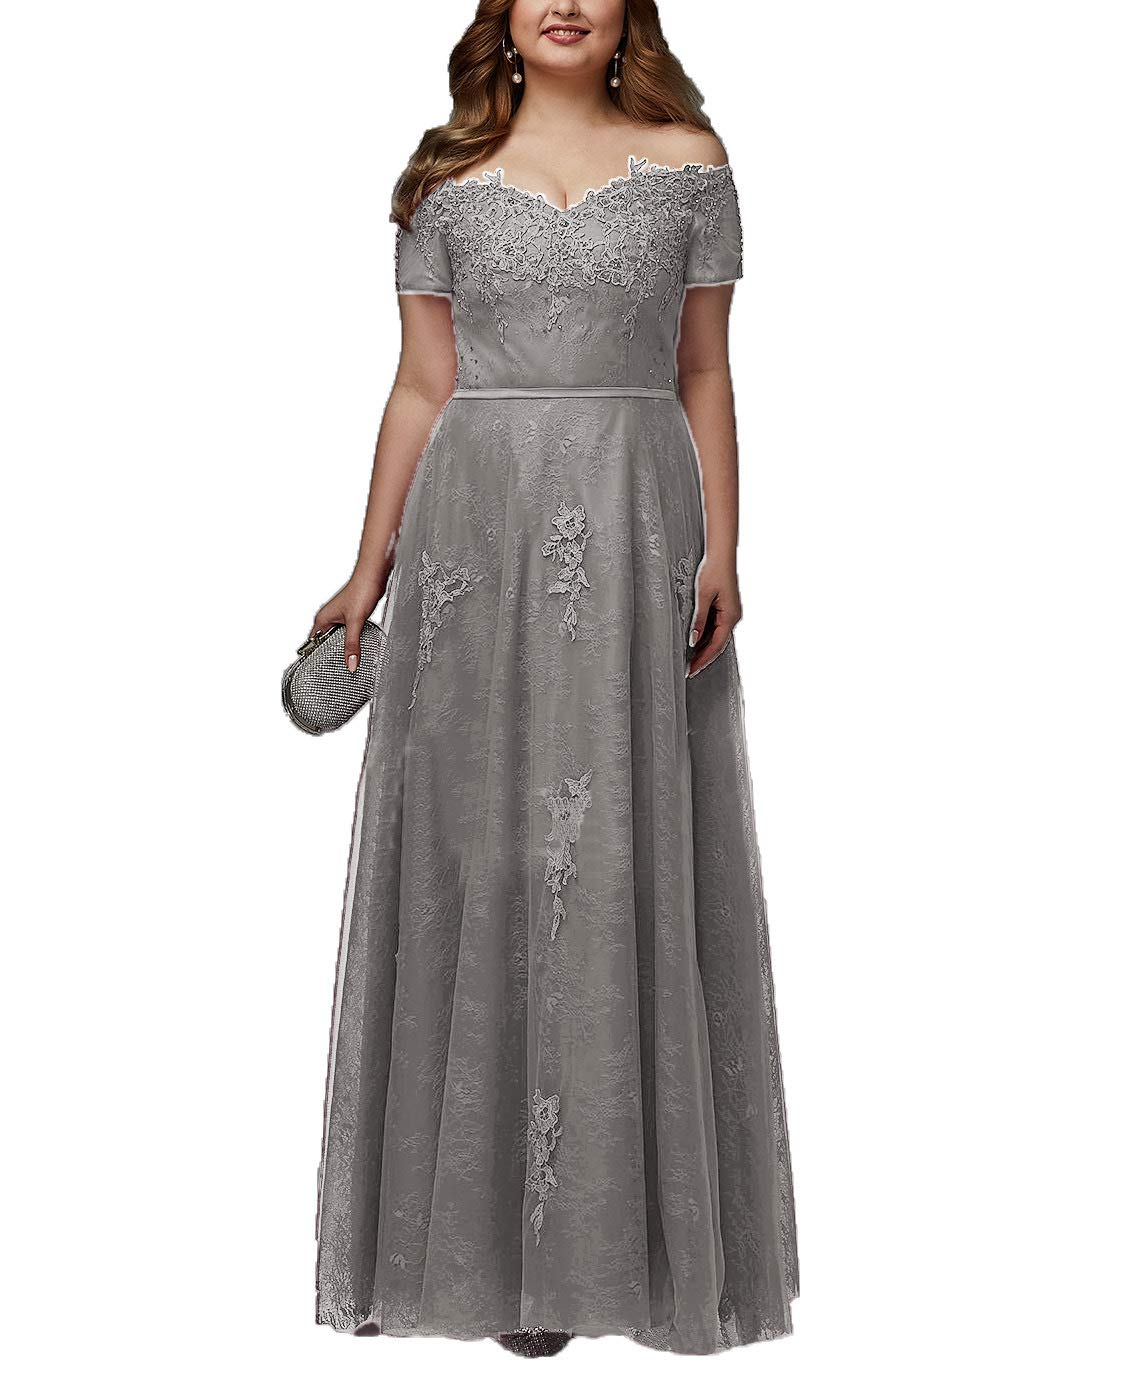 cdf6e4f987f5 Women's Plus Size Off Shoulder Lace Tulle Prom Dress with Sleeves Beading Formal  Evening Gowns Silver Gray